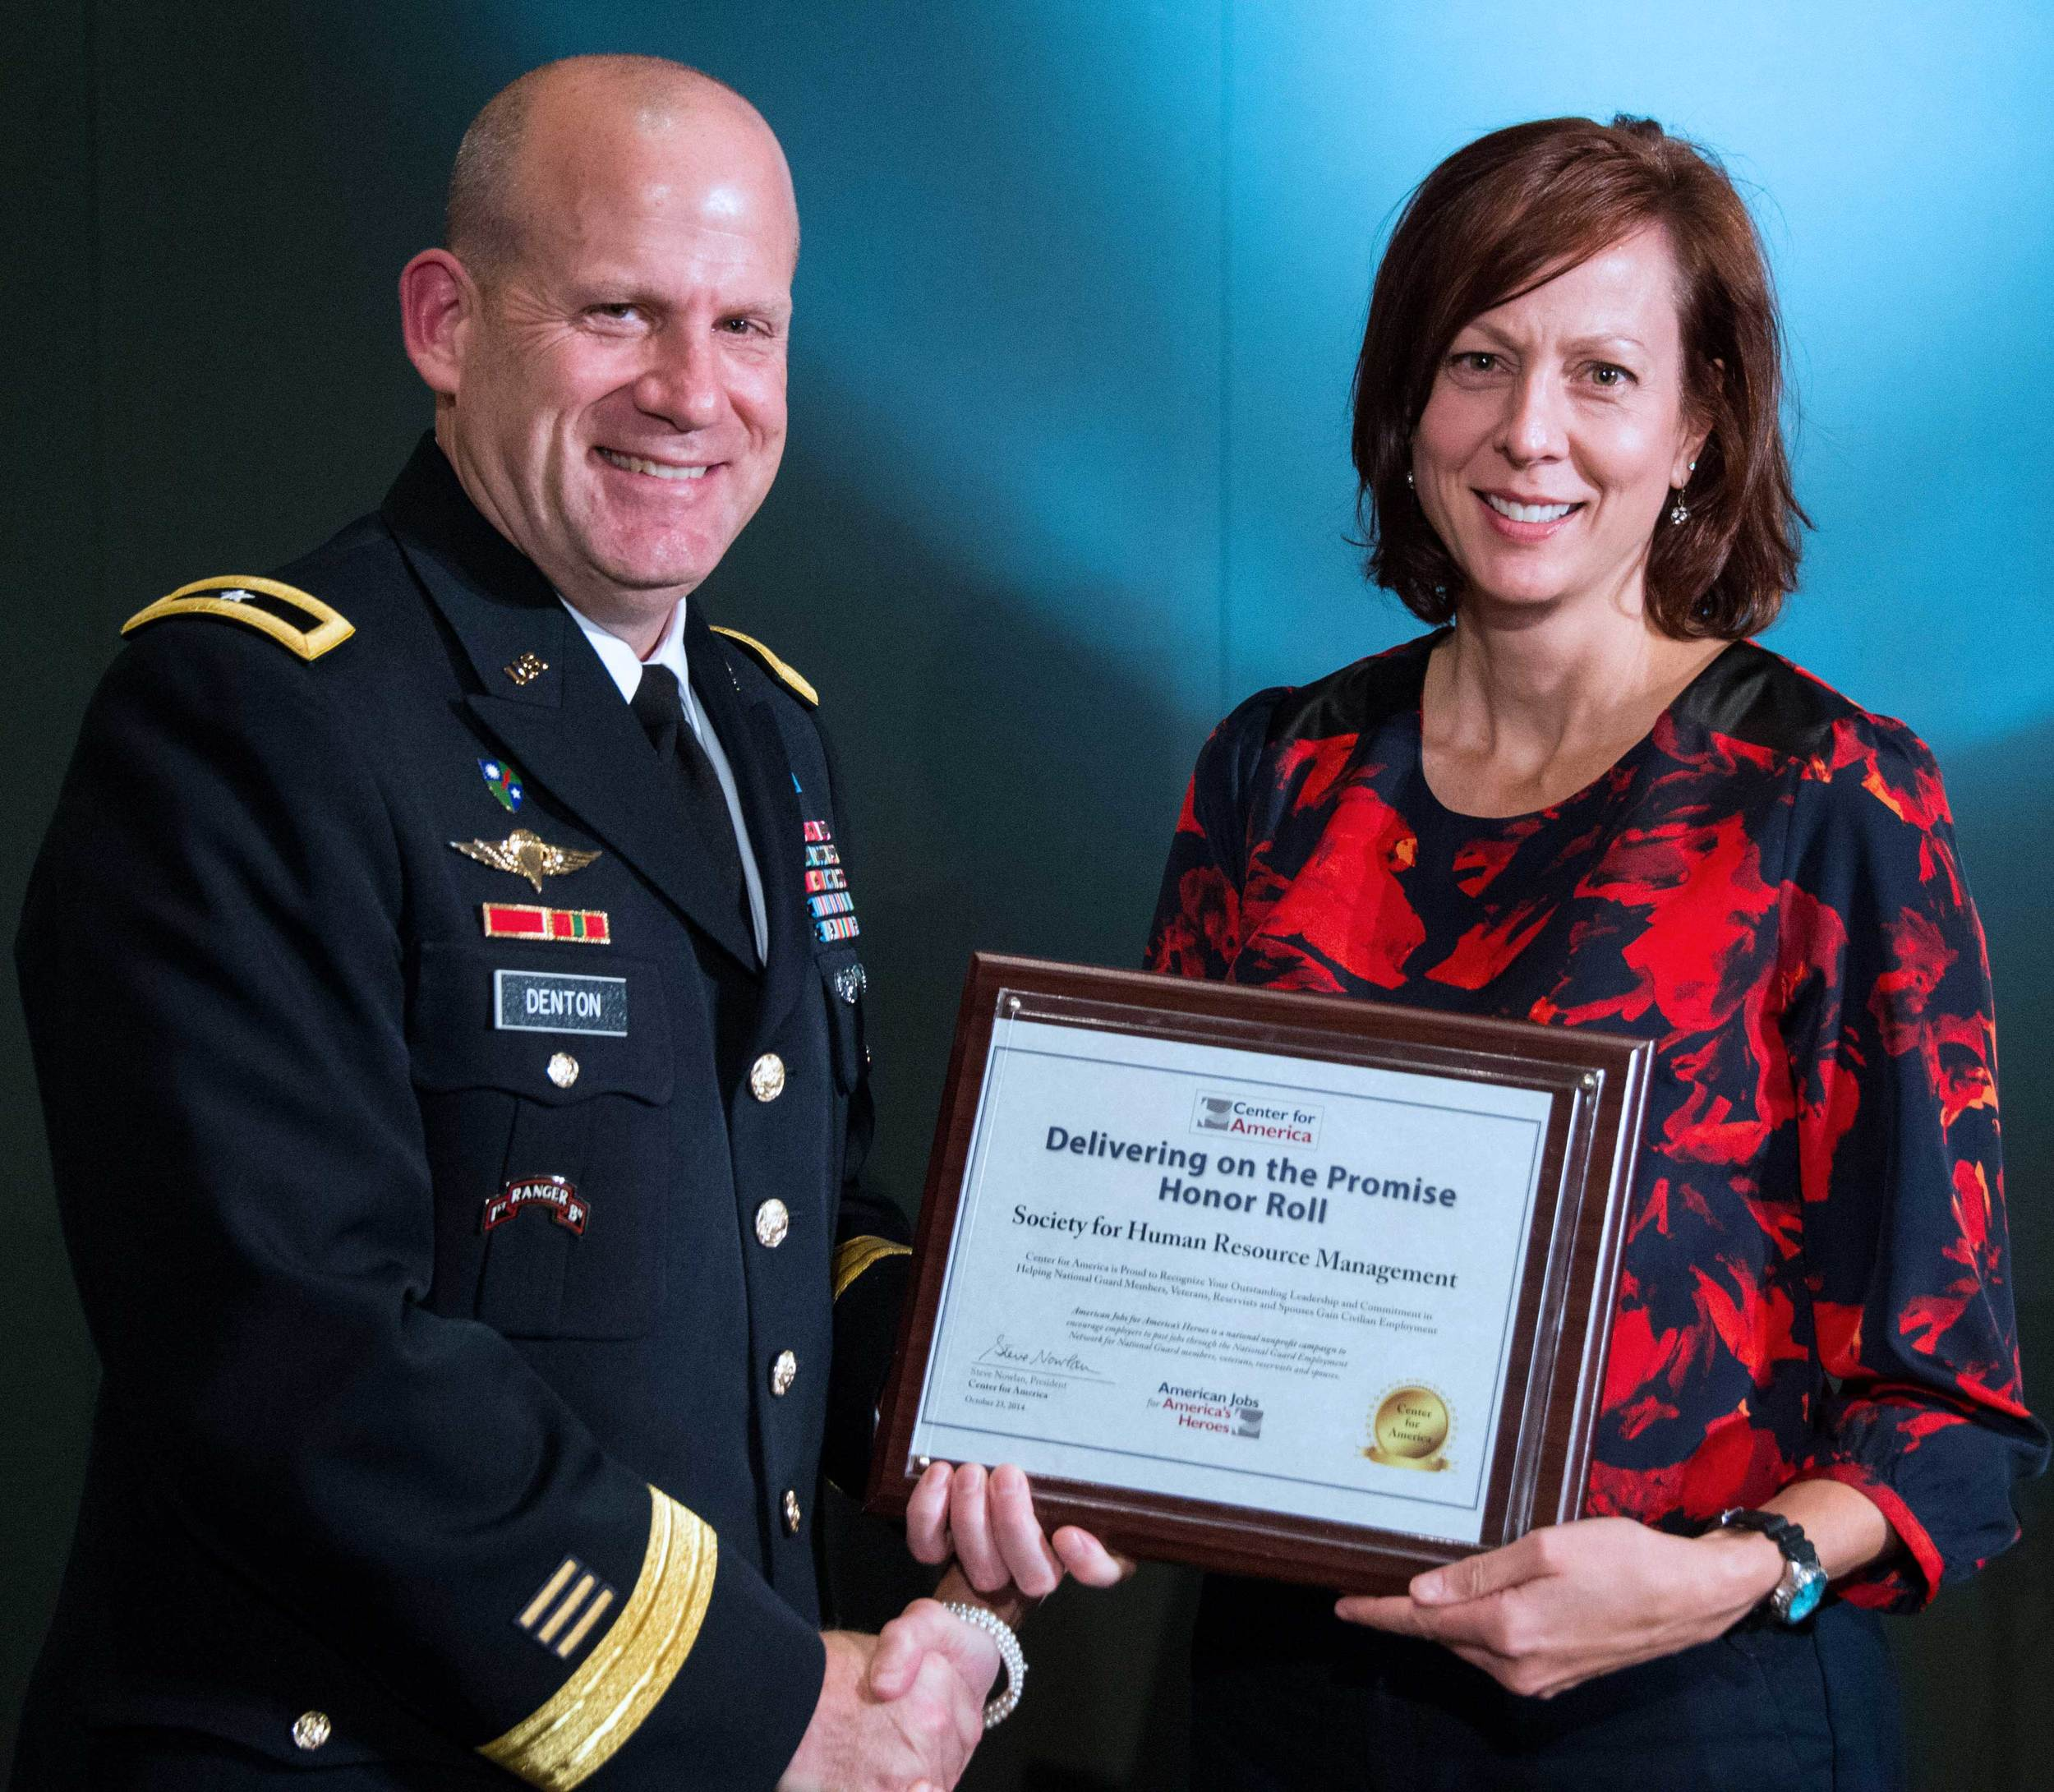 Brigadier General Ivan Denton presents the CFA Award to Nancy Hammer, Senior Government Affairs Policy Counsel, Society for Human Resource Management